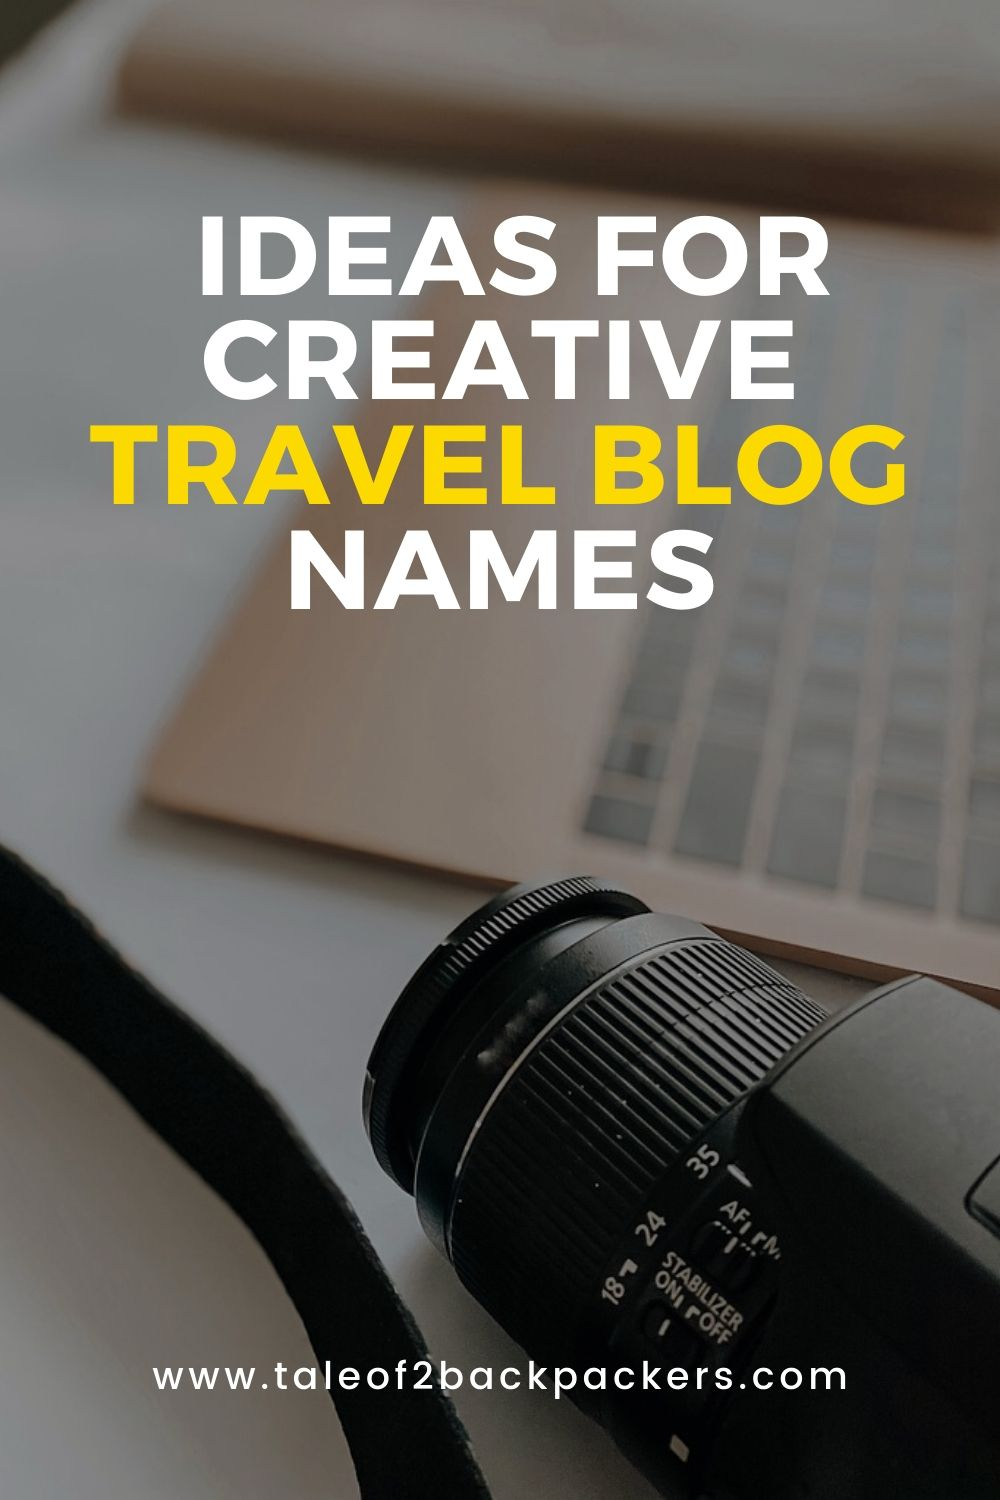 Ideas for creative travel blog names